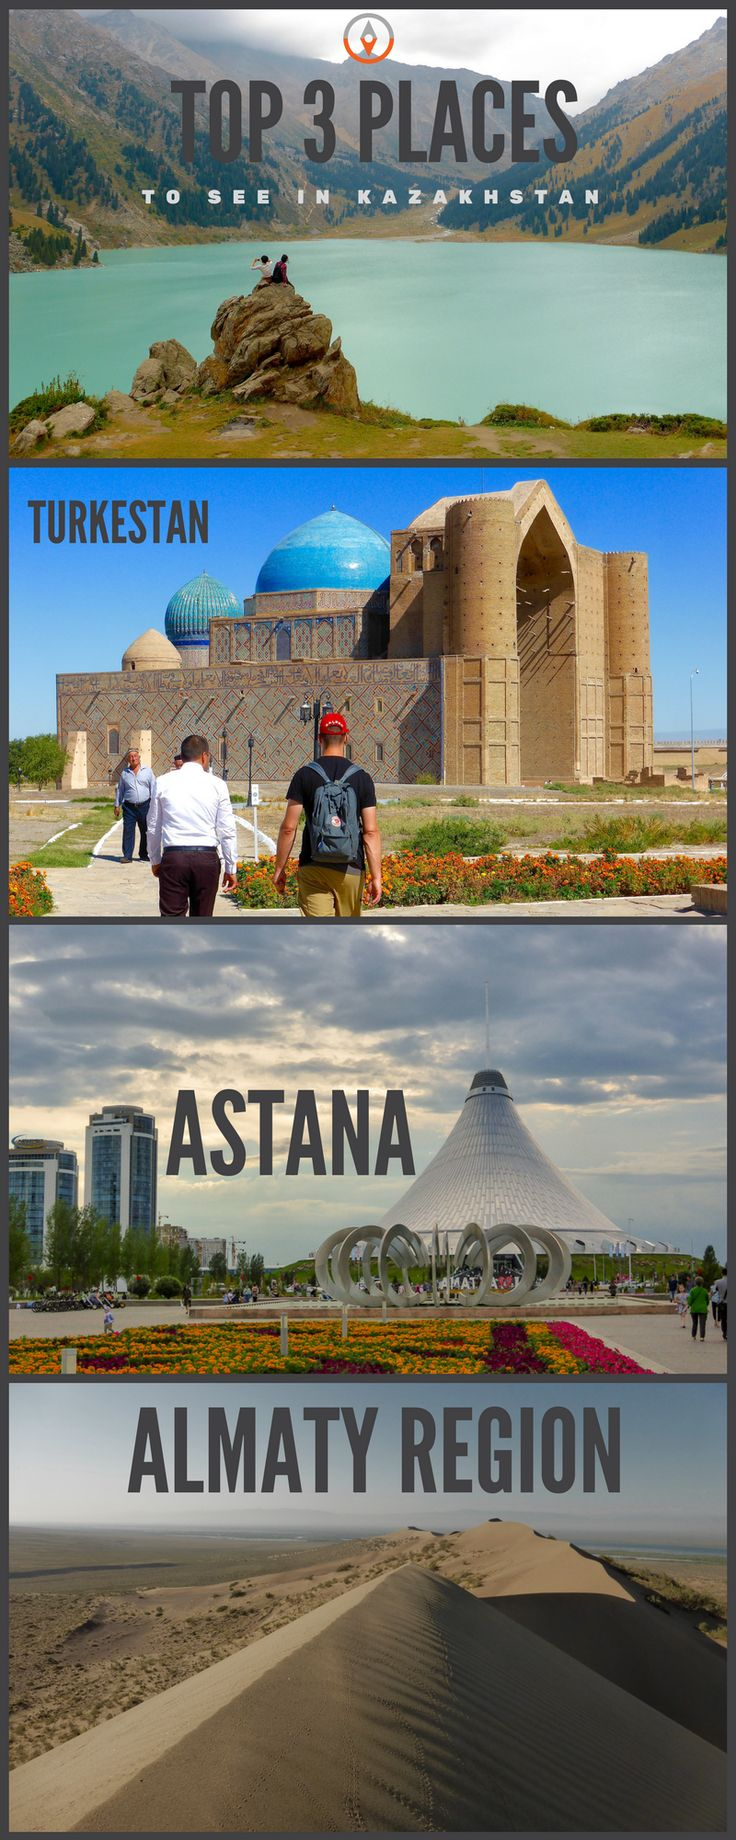 Top Places to see in Kazakhstan include Turkestan, Almaty and Astana. Combine historical heritage of the Silk Road with Soviet legacy and modern architecture in Astana